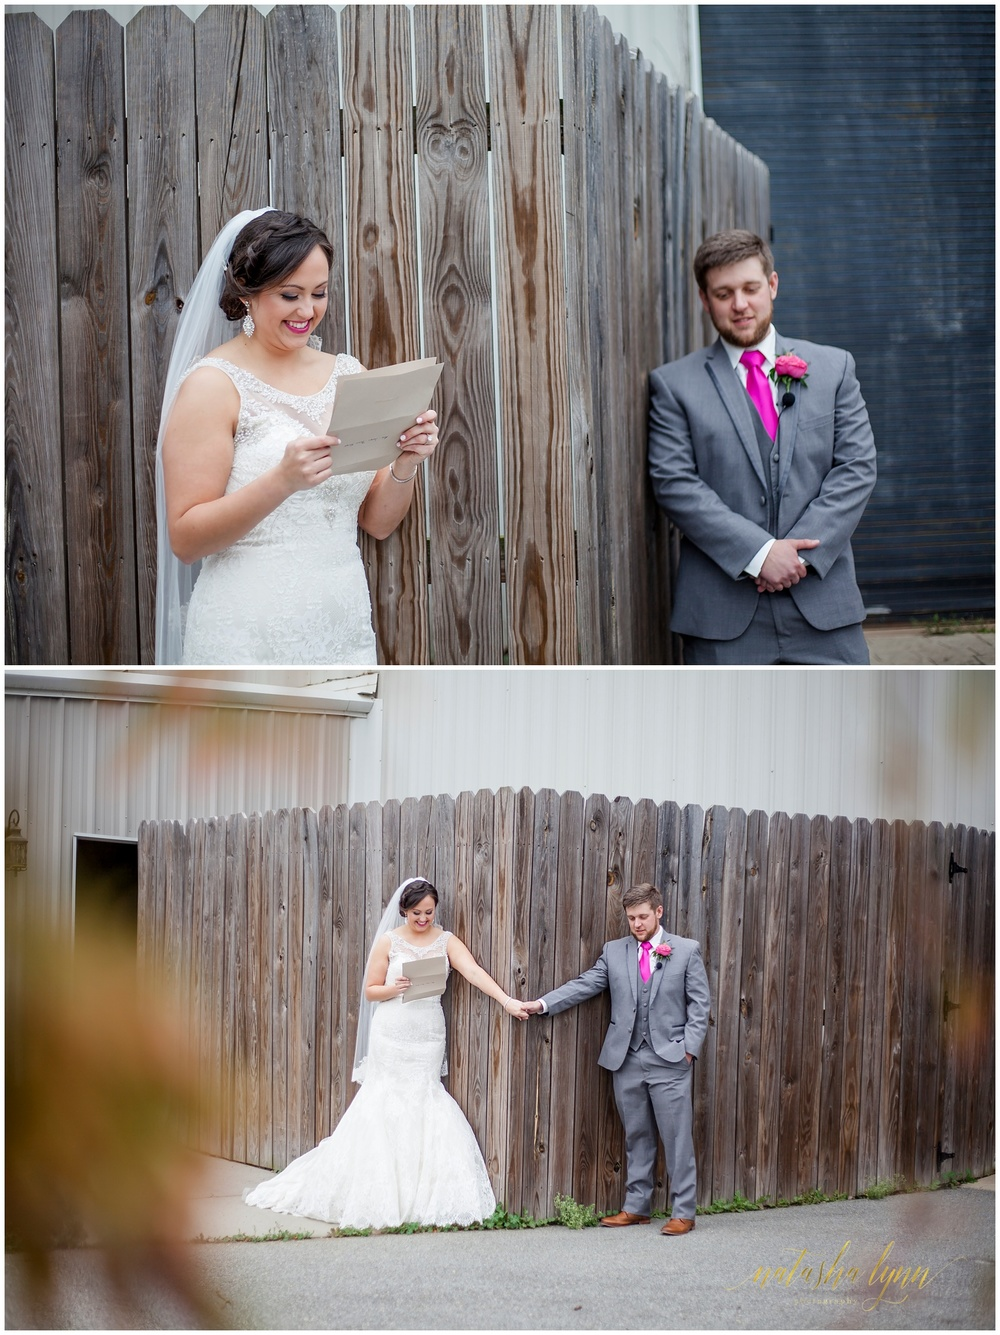 High+Point+Wedding+Photographer+FirstLook.jpg